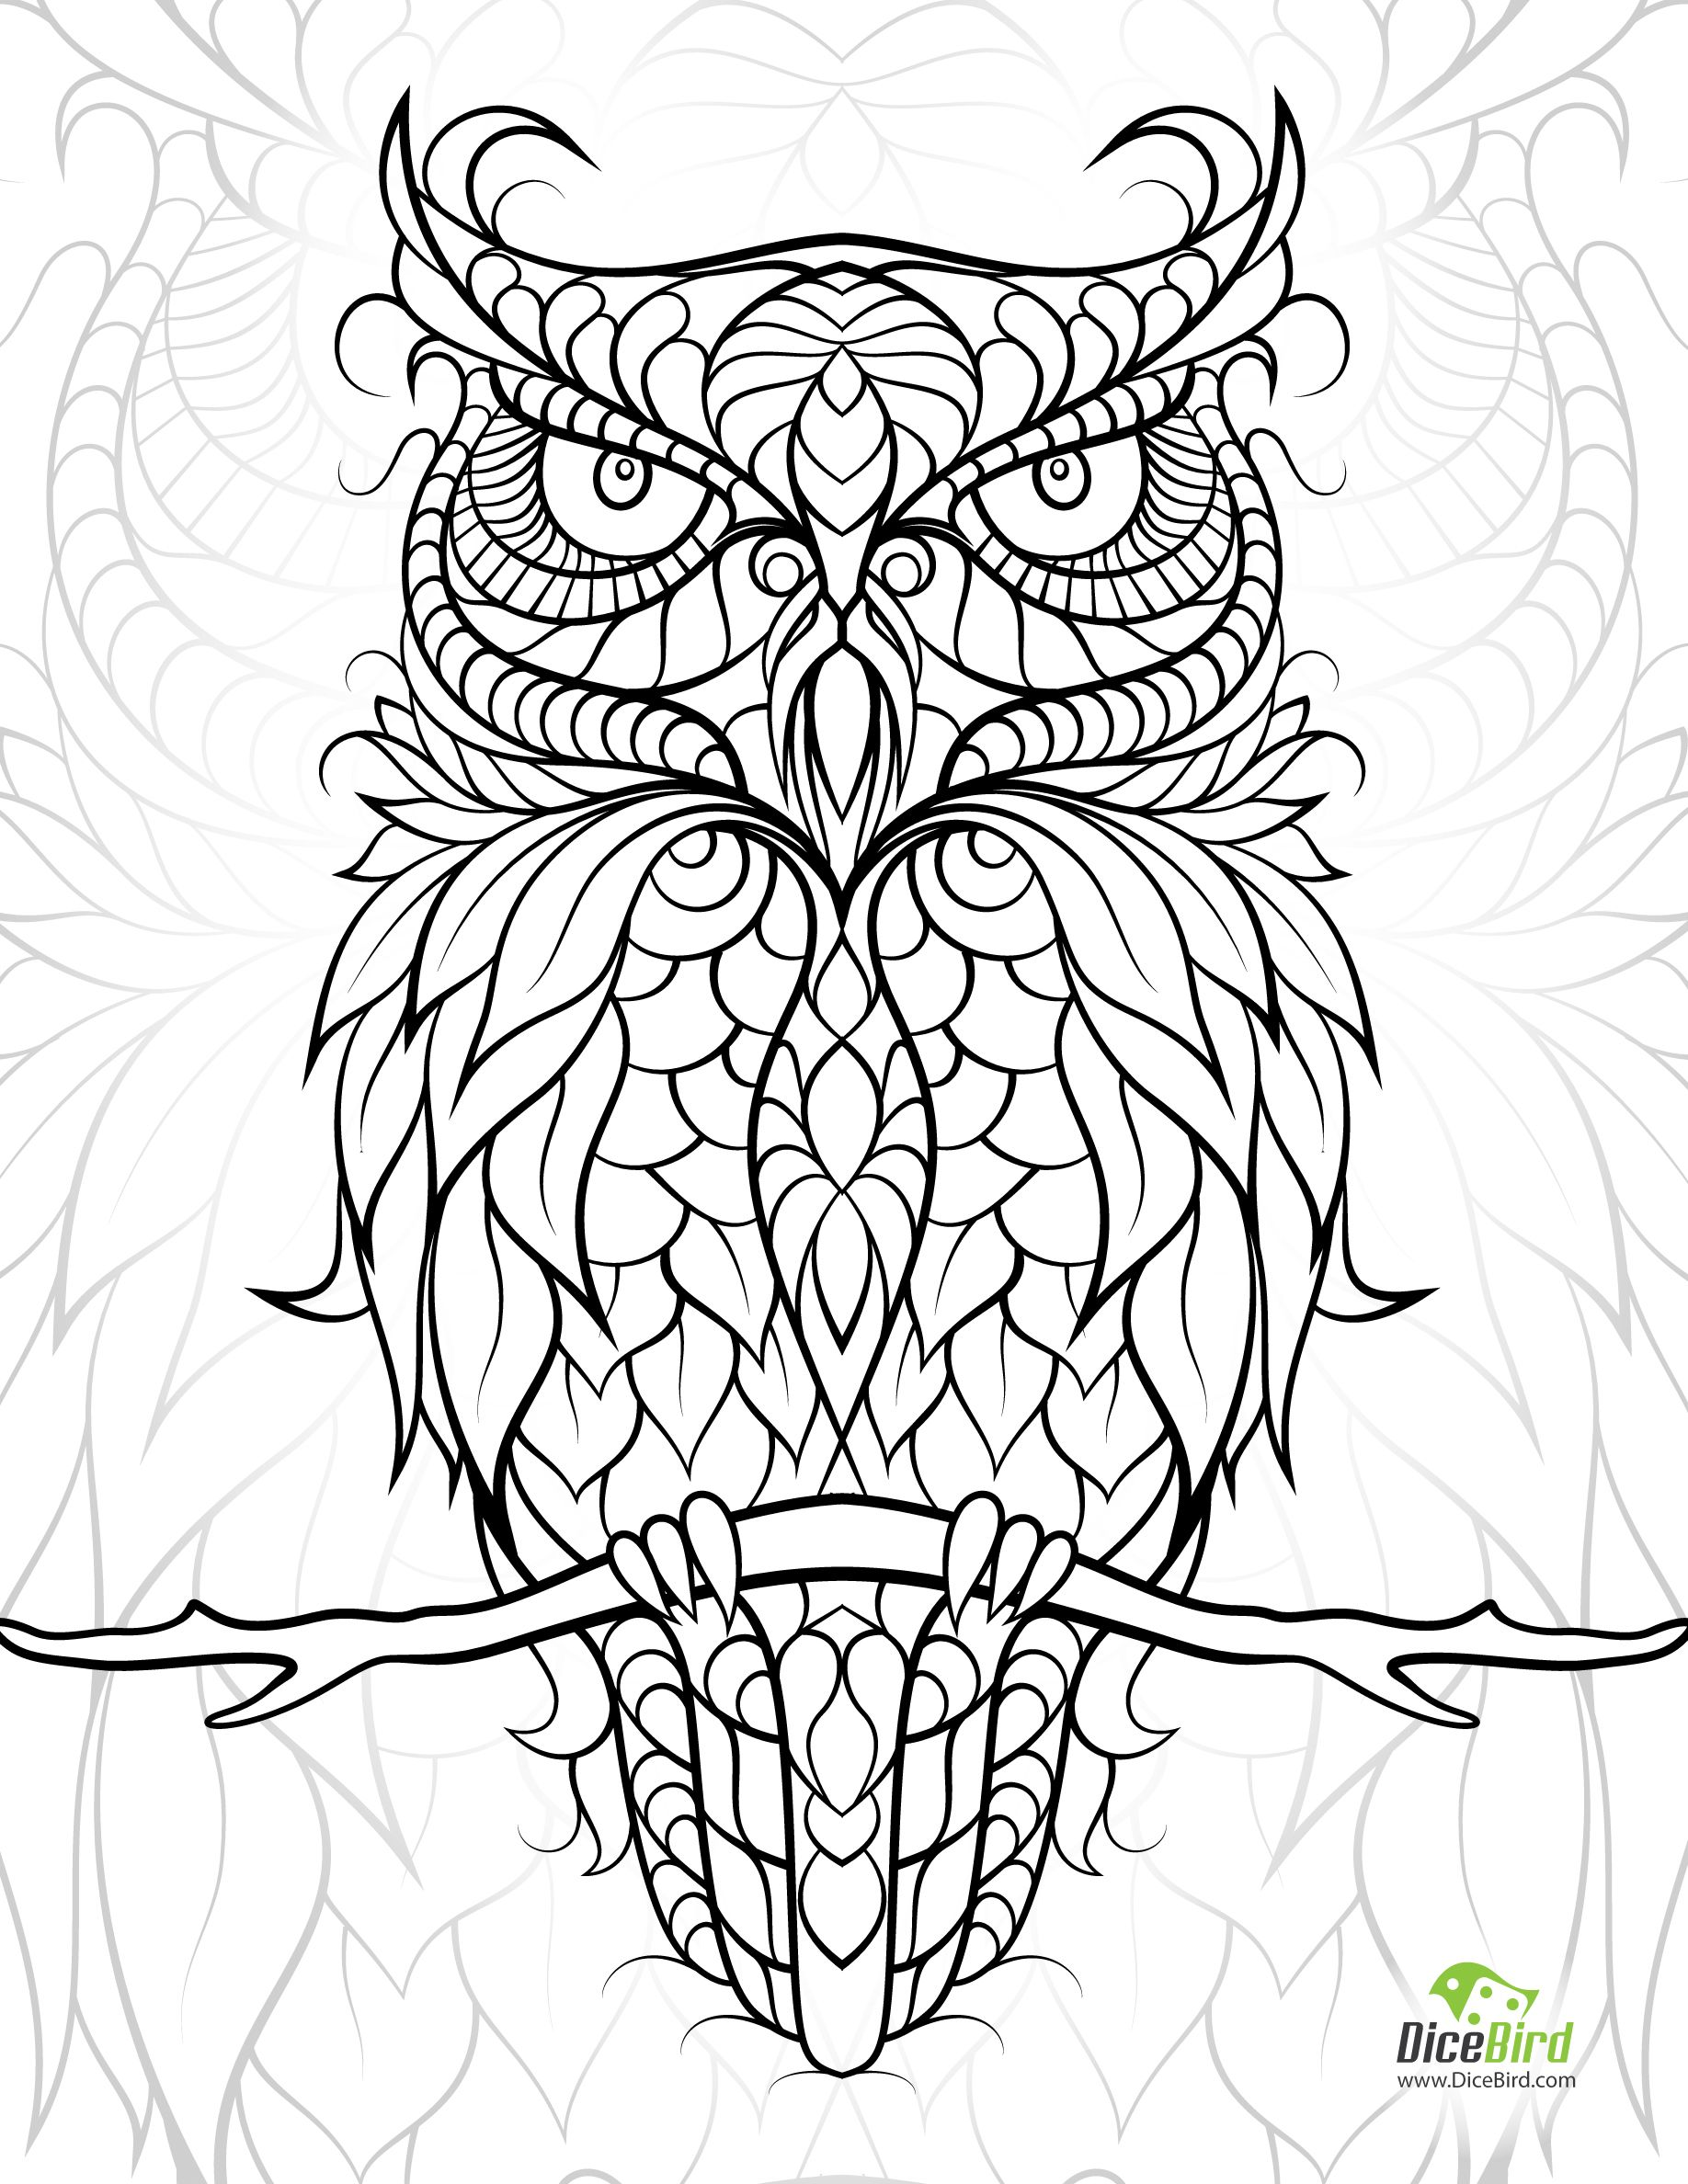 Owl  Coloring Free printable colouring pages and Mandalas